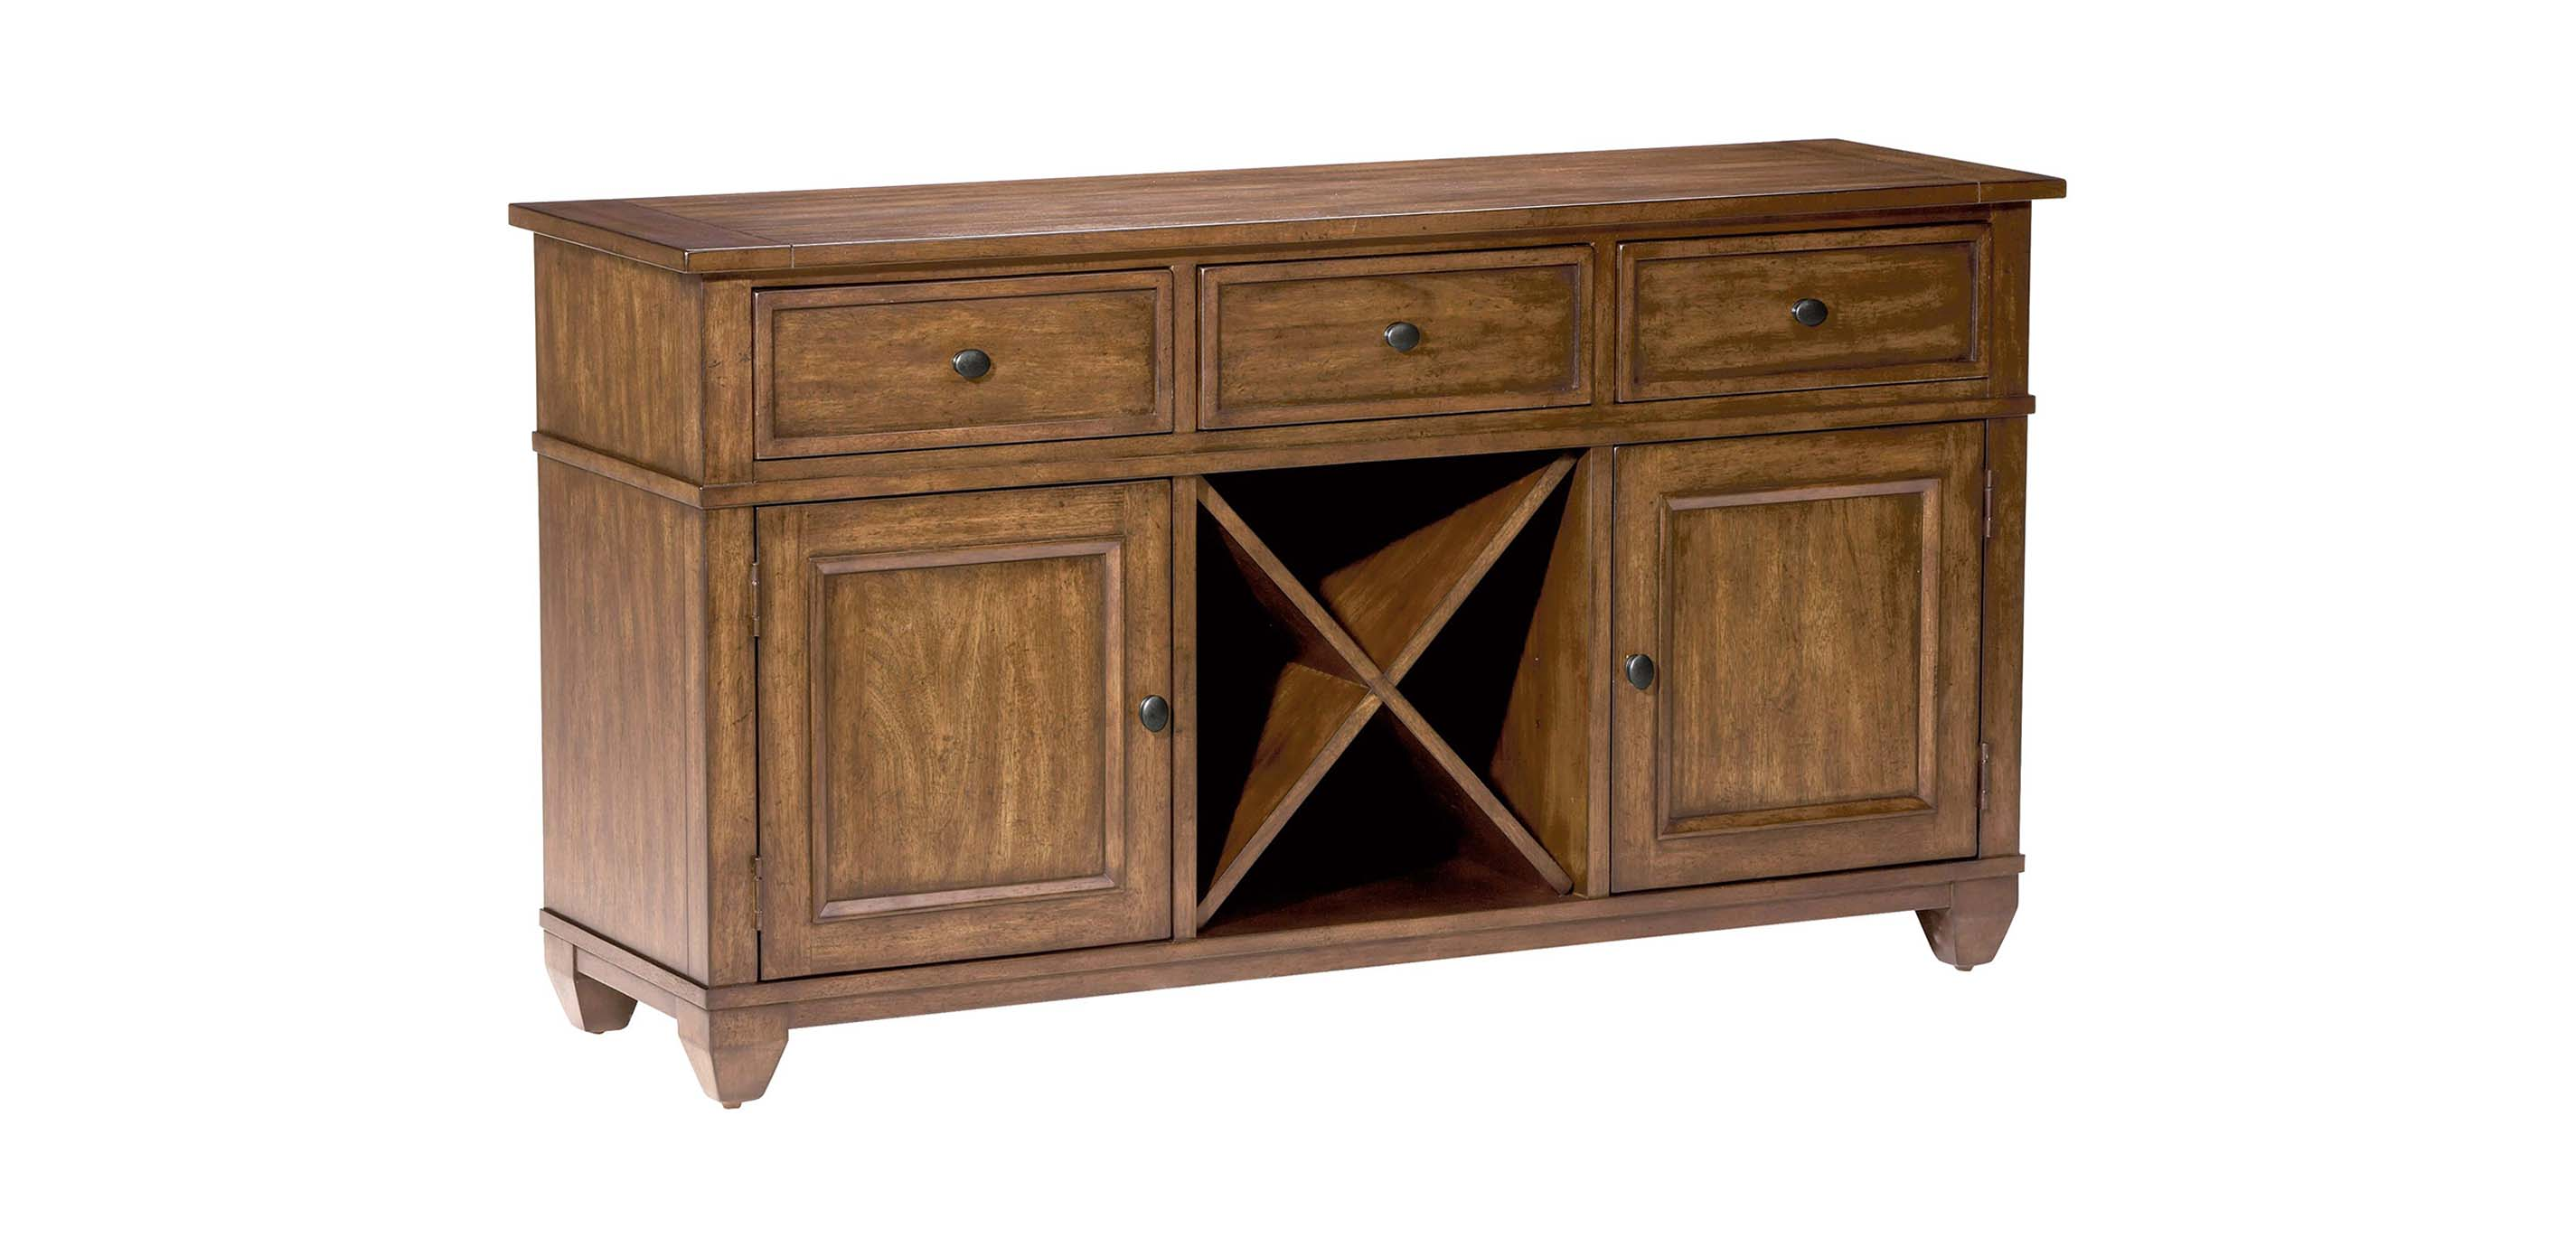 gregory dining console buffets sideboards servers ethan allen. Black Bedroom Furniture Sets. Home Design Ideas